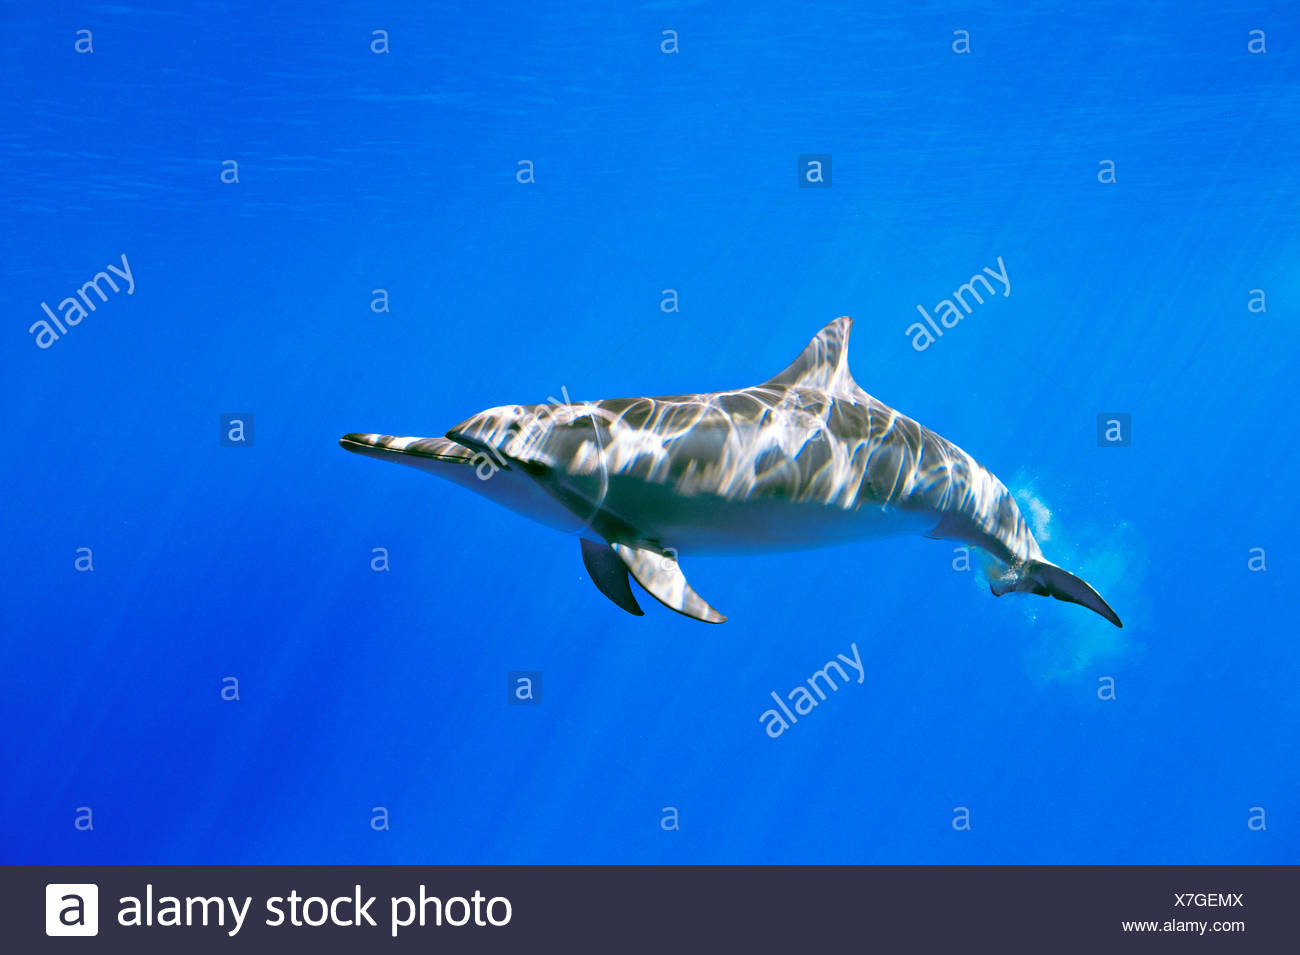 A spinner dolphin, Stenella longirostris, swims in waters off Oahu, Hawaii. - Stock Image